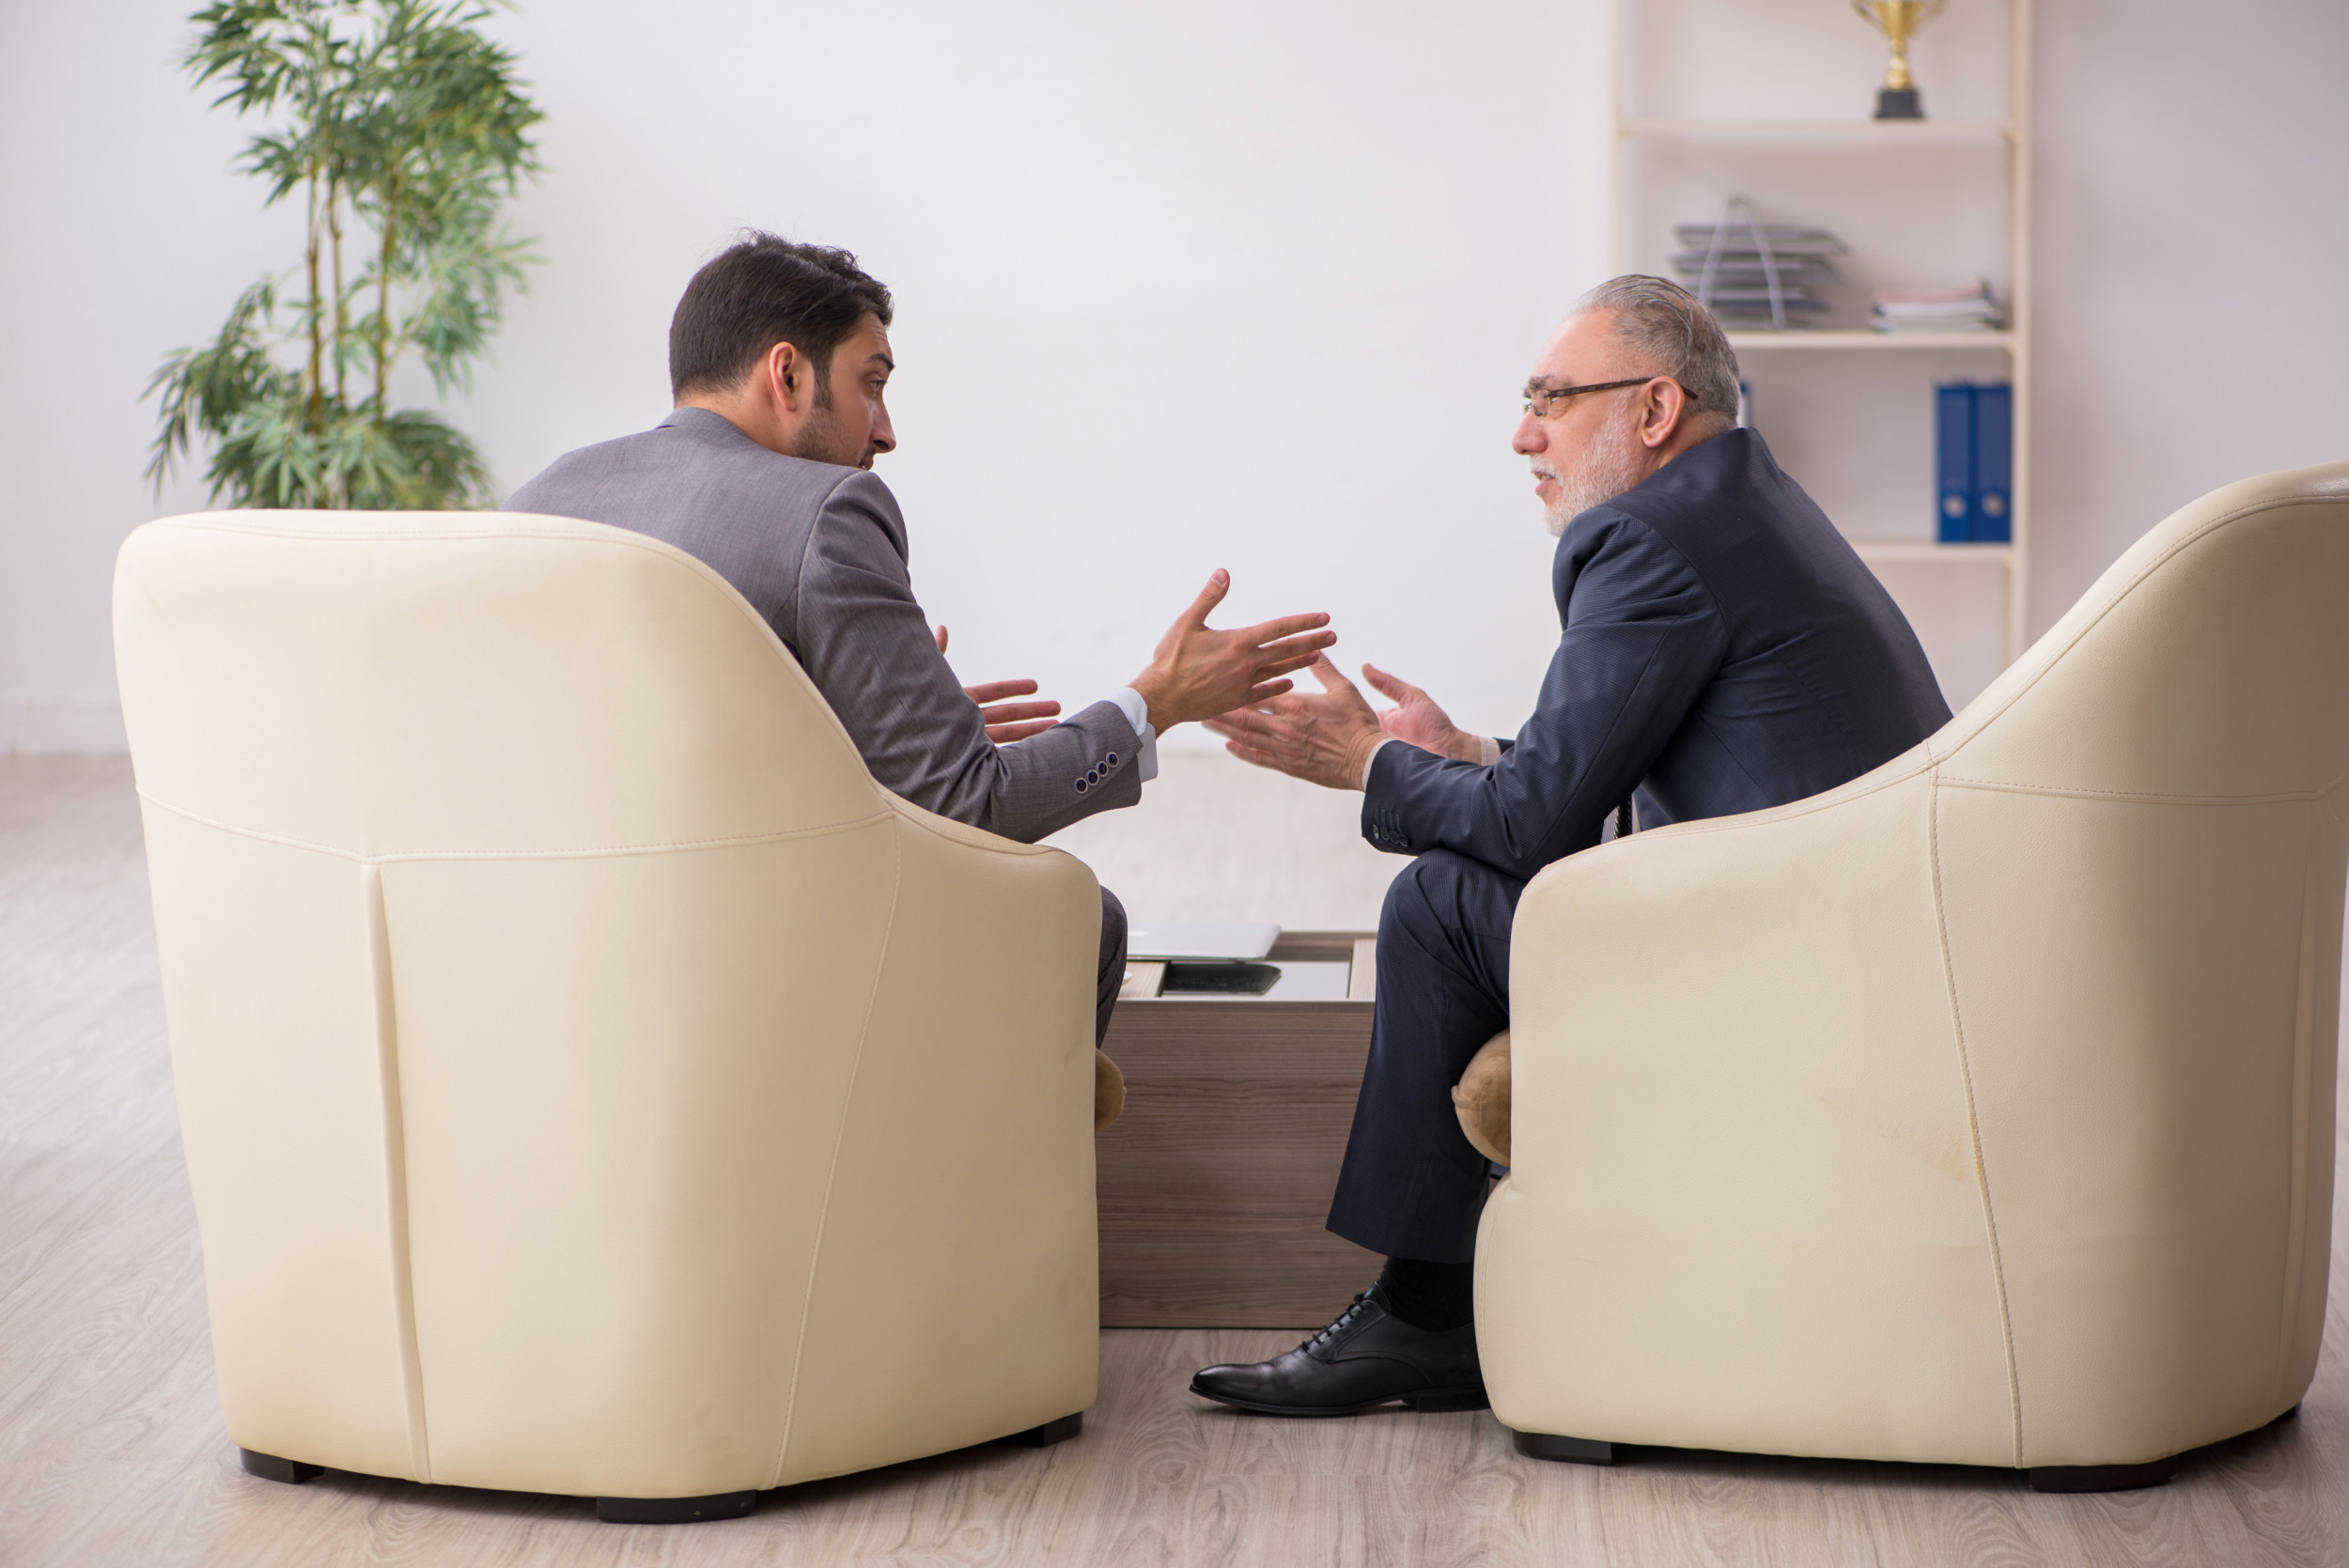 Two businessmen discussing project at workplace